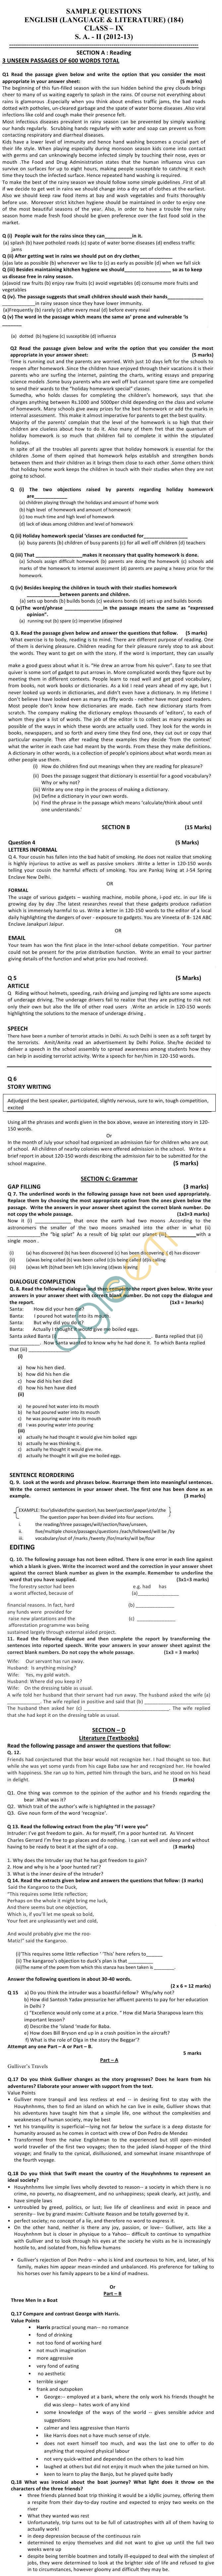 CBSE Board Exam Sample Papers (SA2) Class IX - English Lang. & Lit.